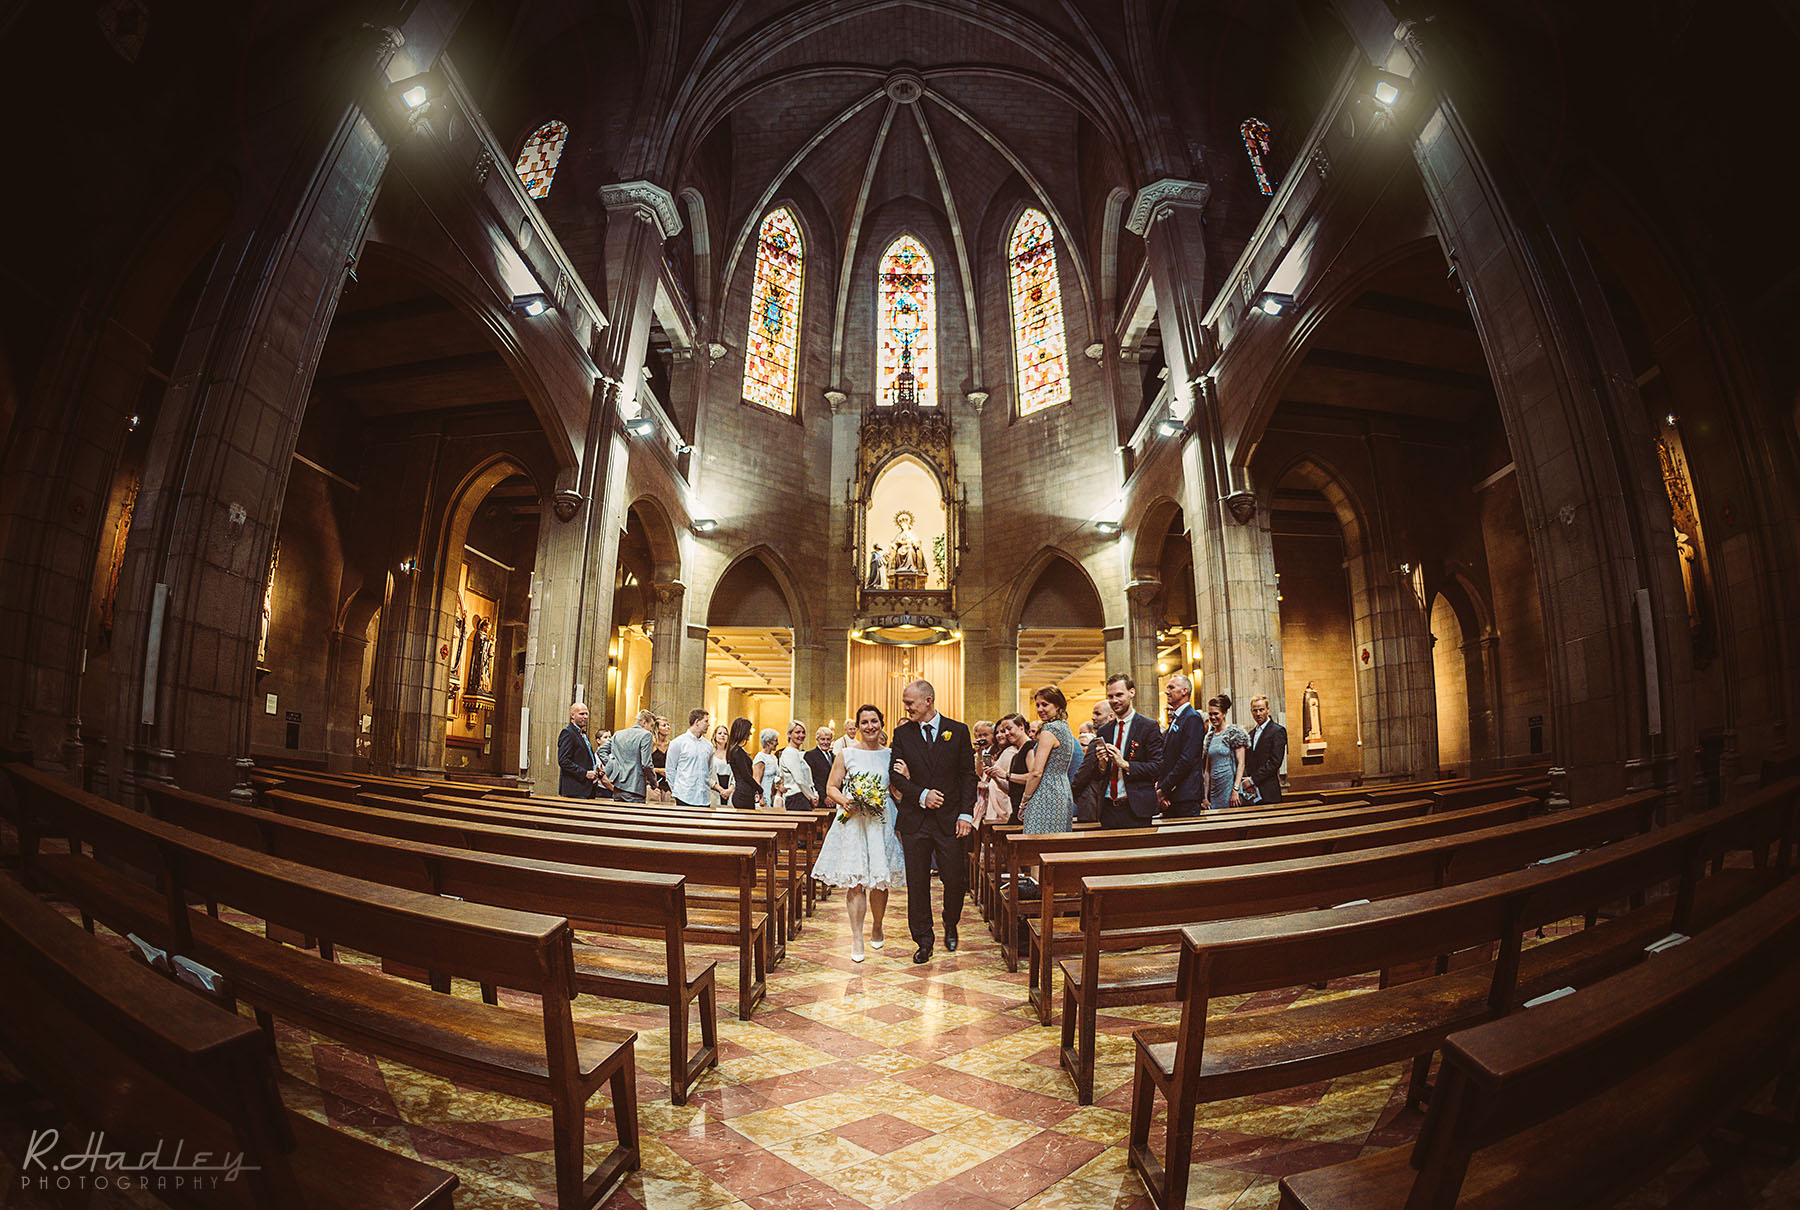 Wedding photographer at the Nostra Señora del Rosario Church in Barcelona